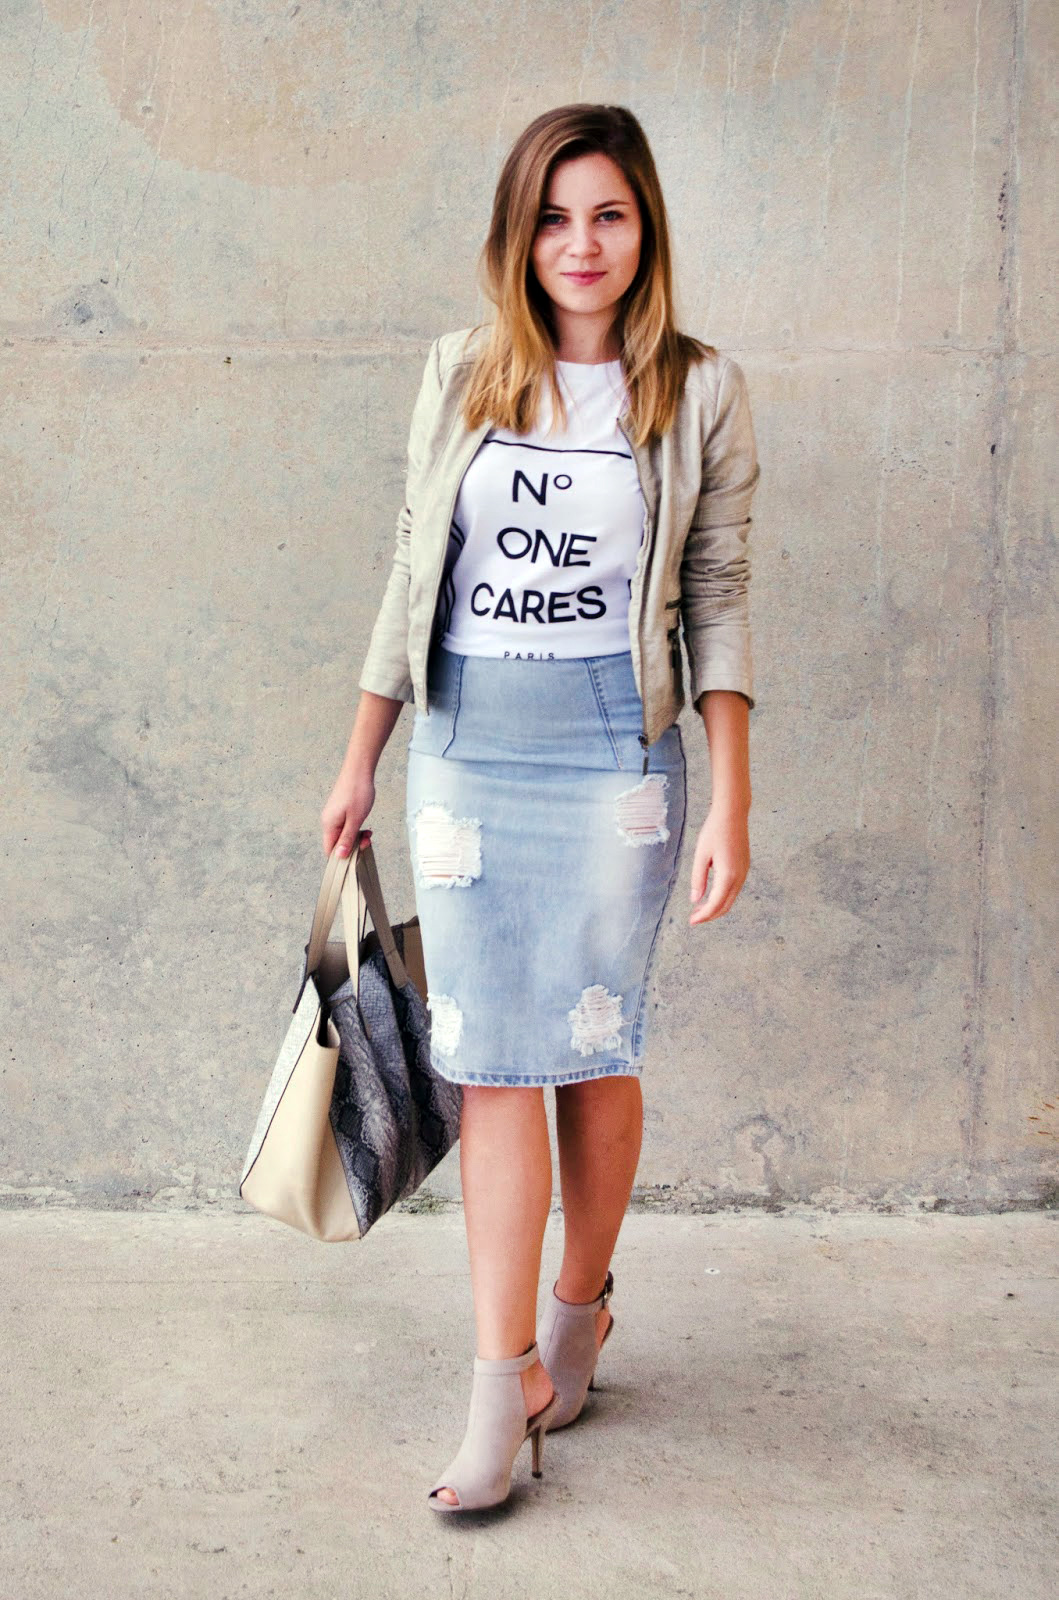 dressing up casual tee